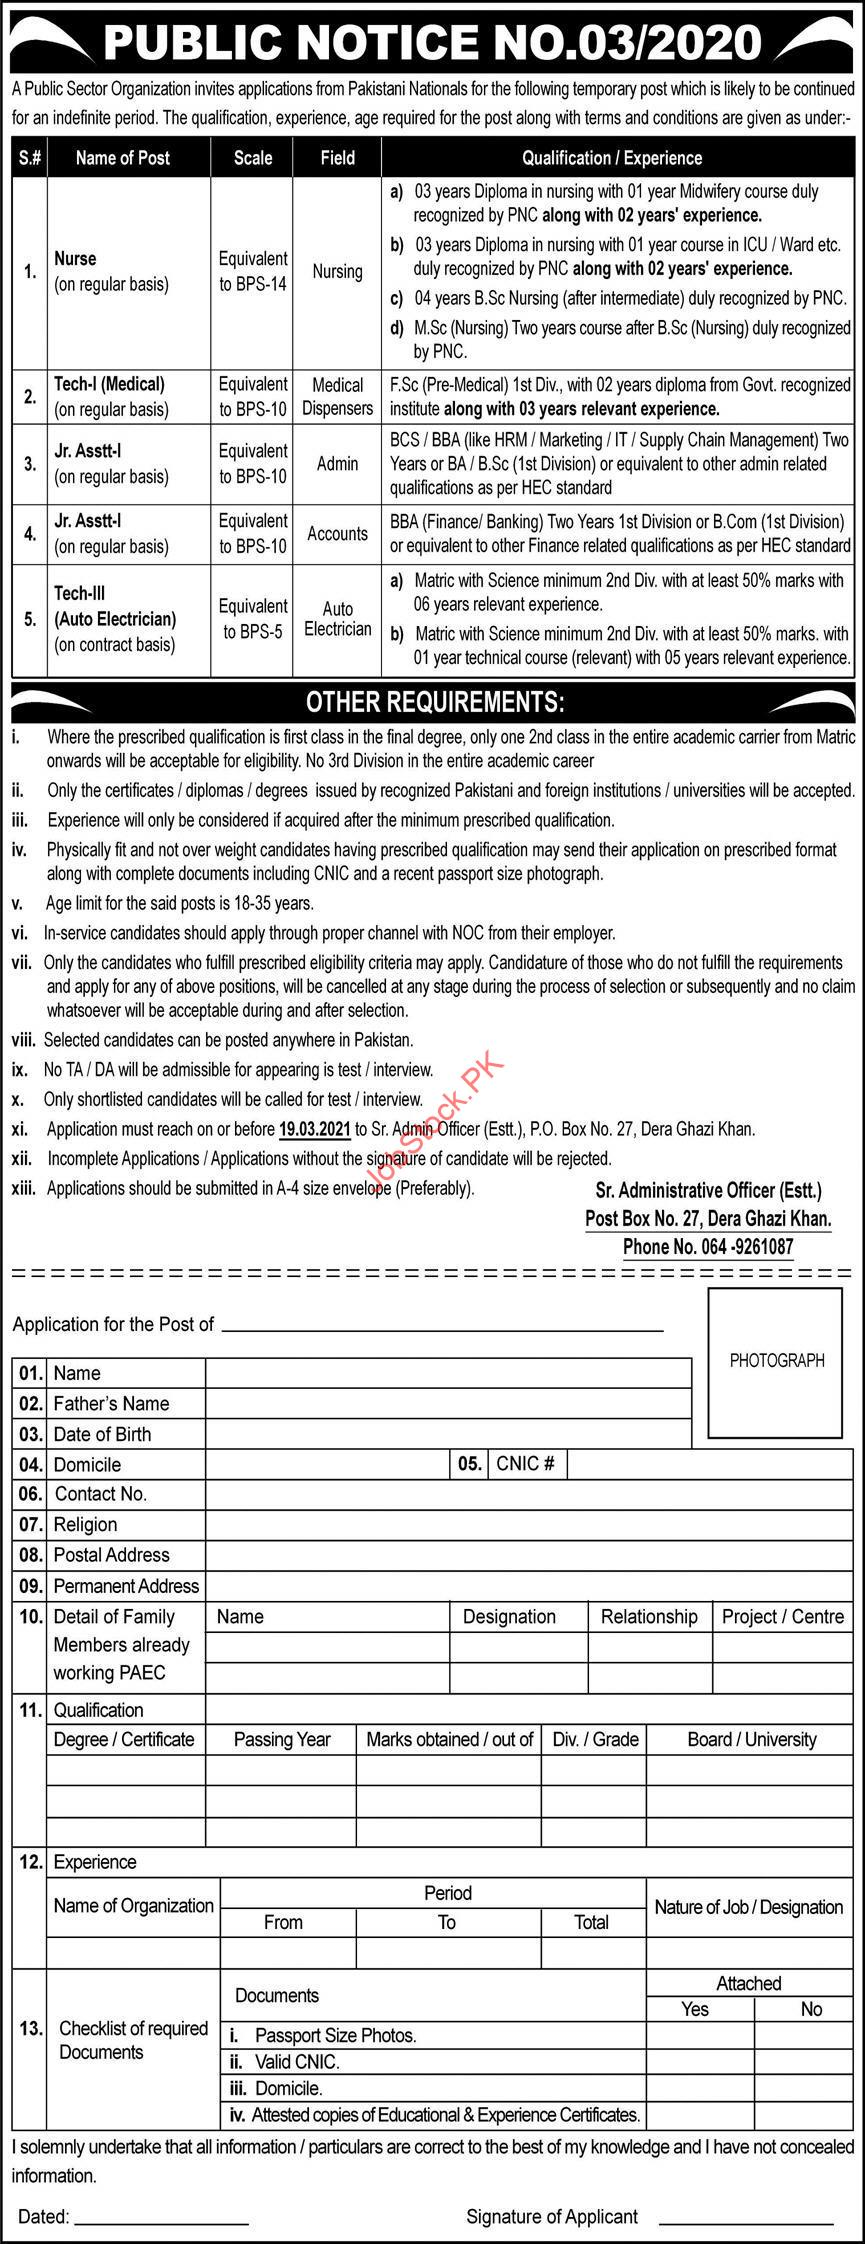 Atomic Energy Public Sector Organization Dera Ghazi Khan Jobs 2021 March Latest